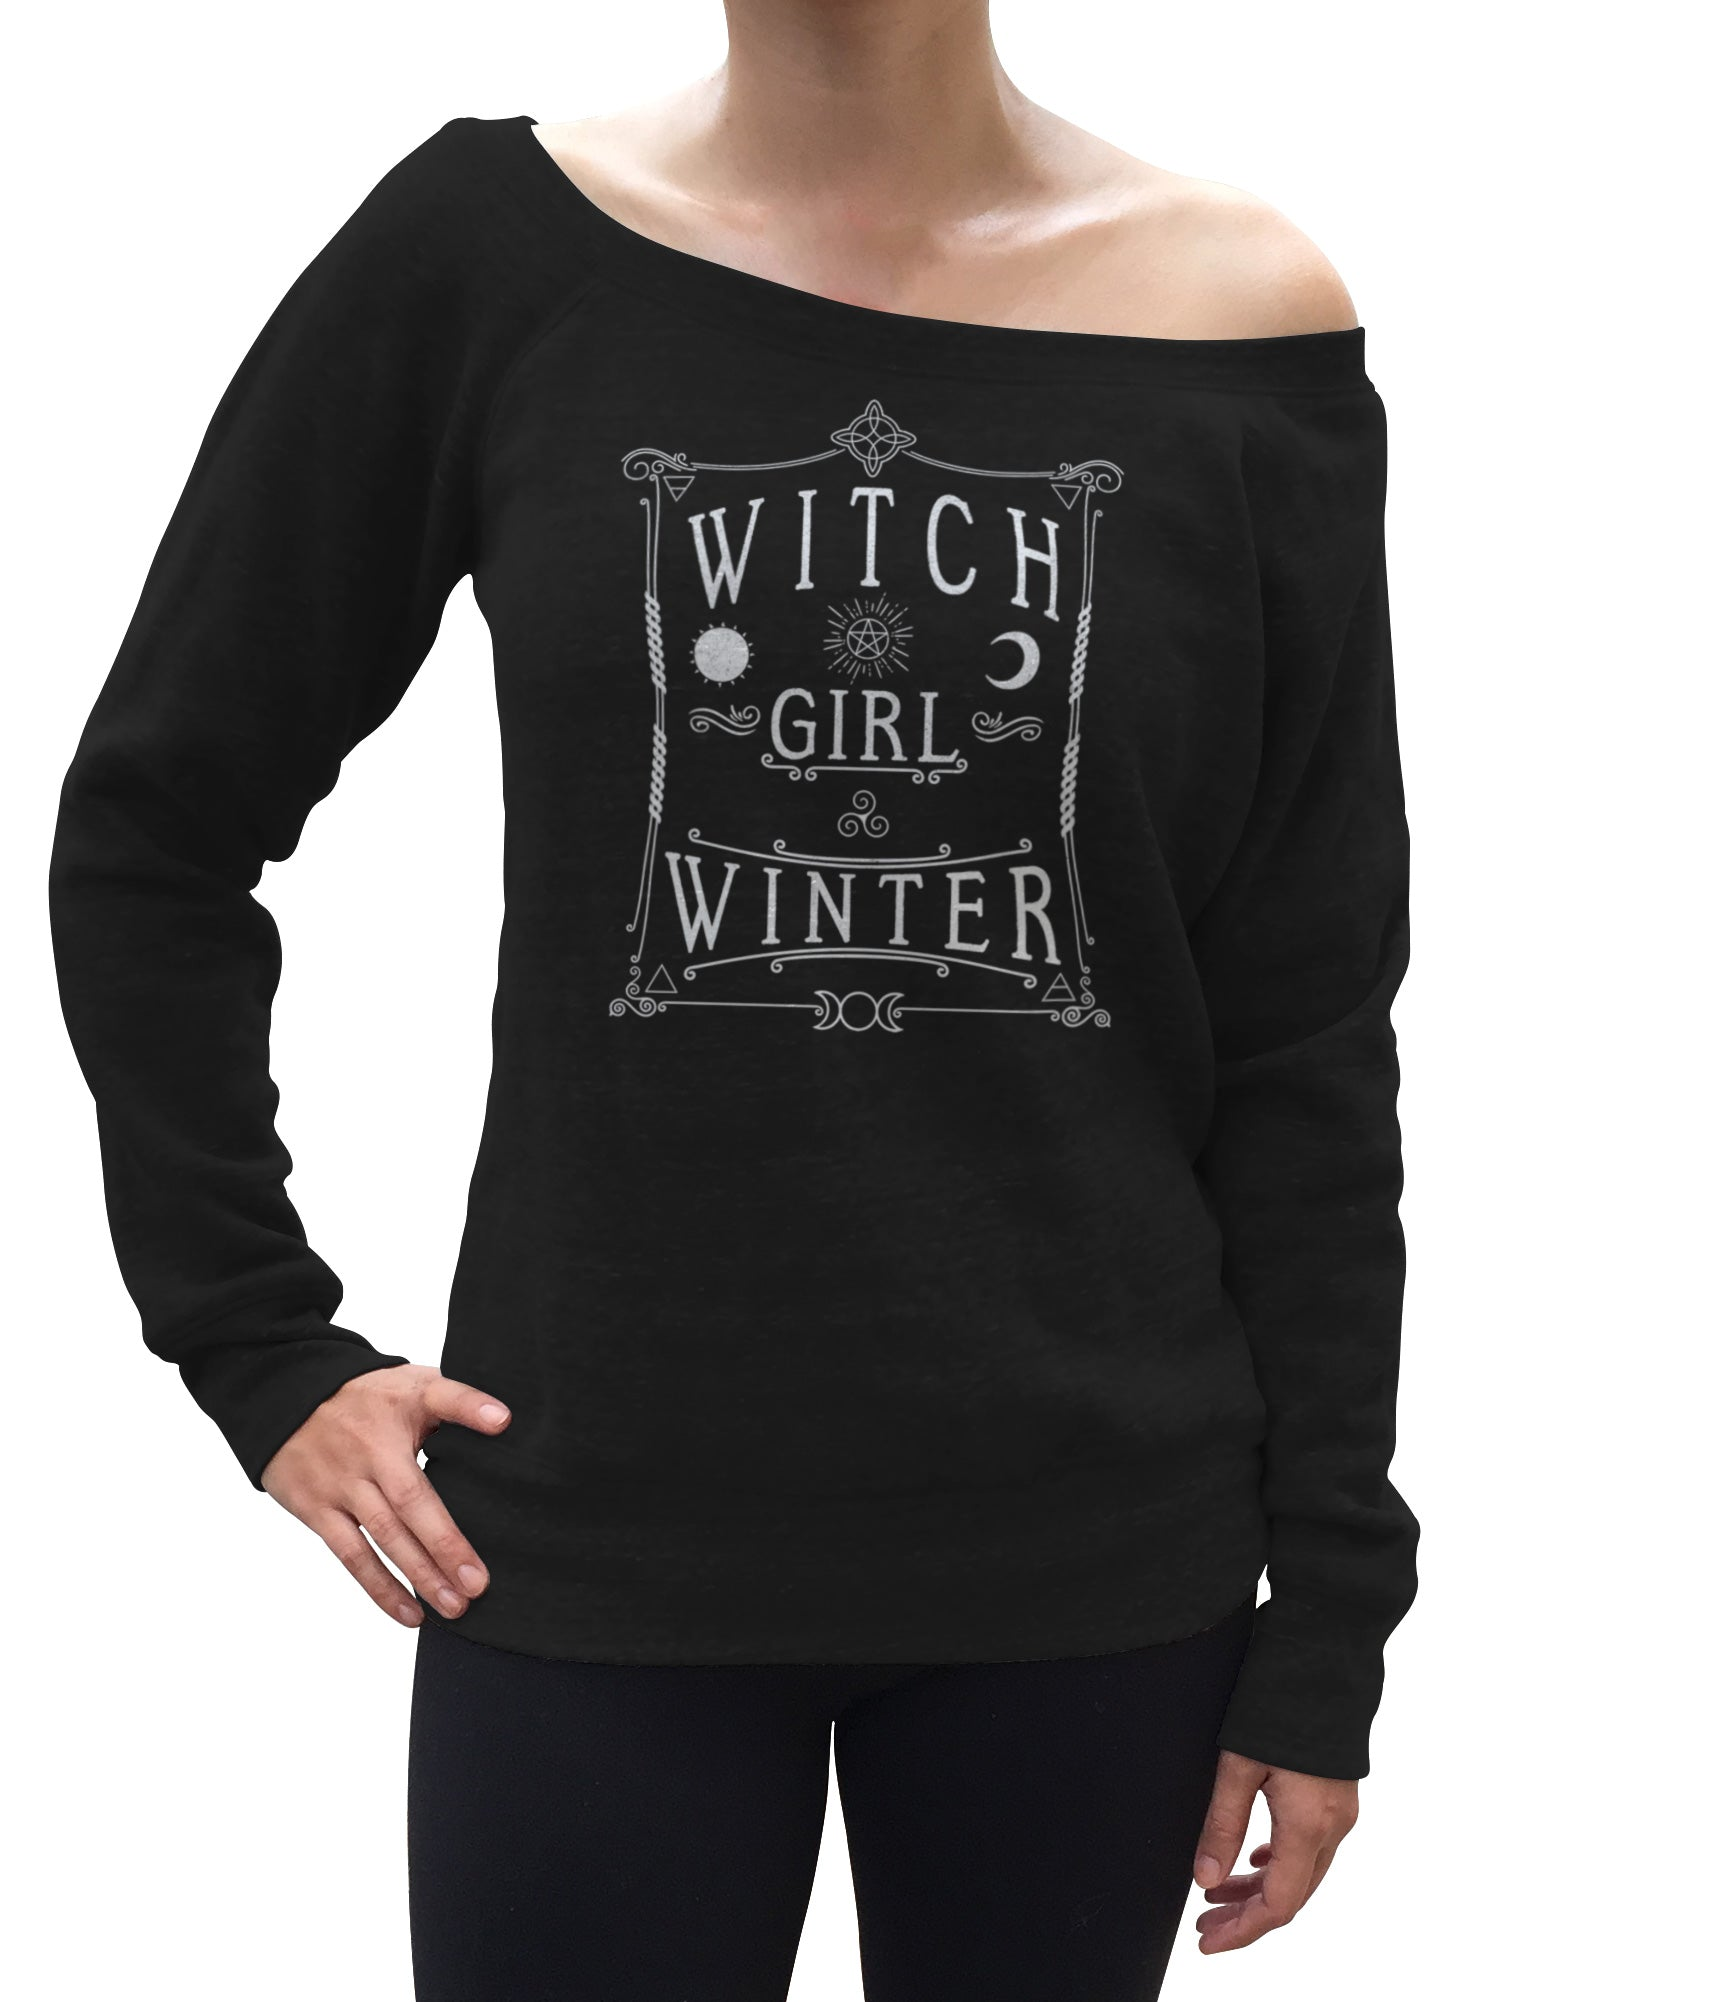 Women's Witch Girl Winter Scoop Neck Fleece